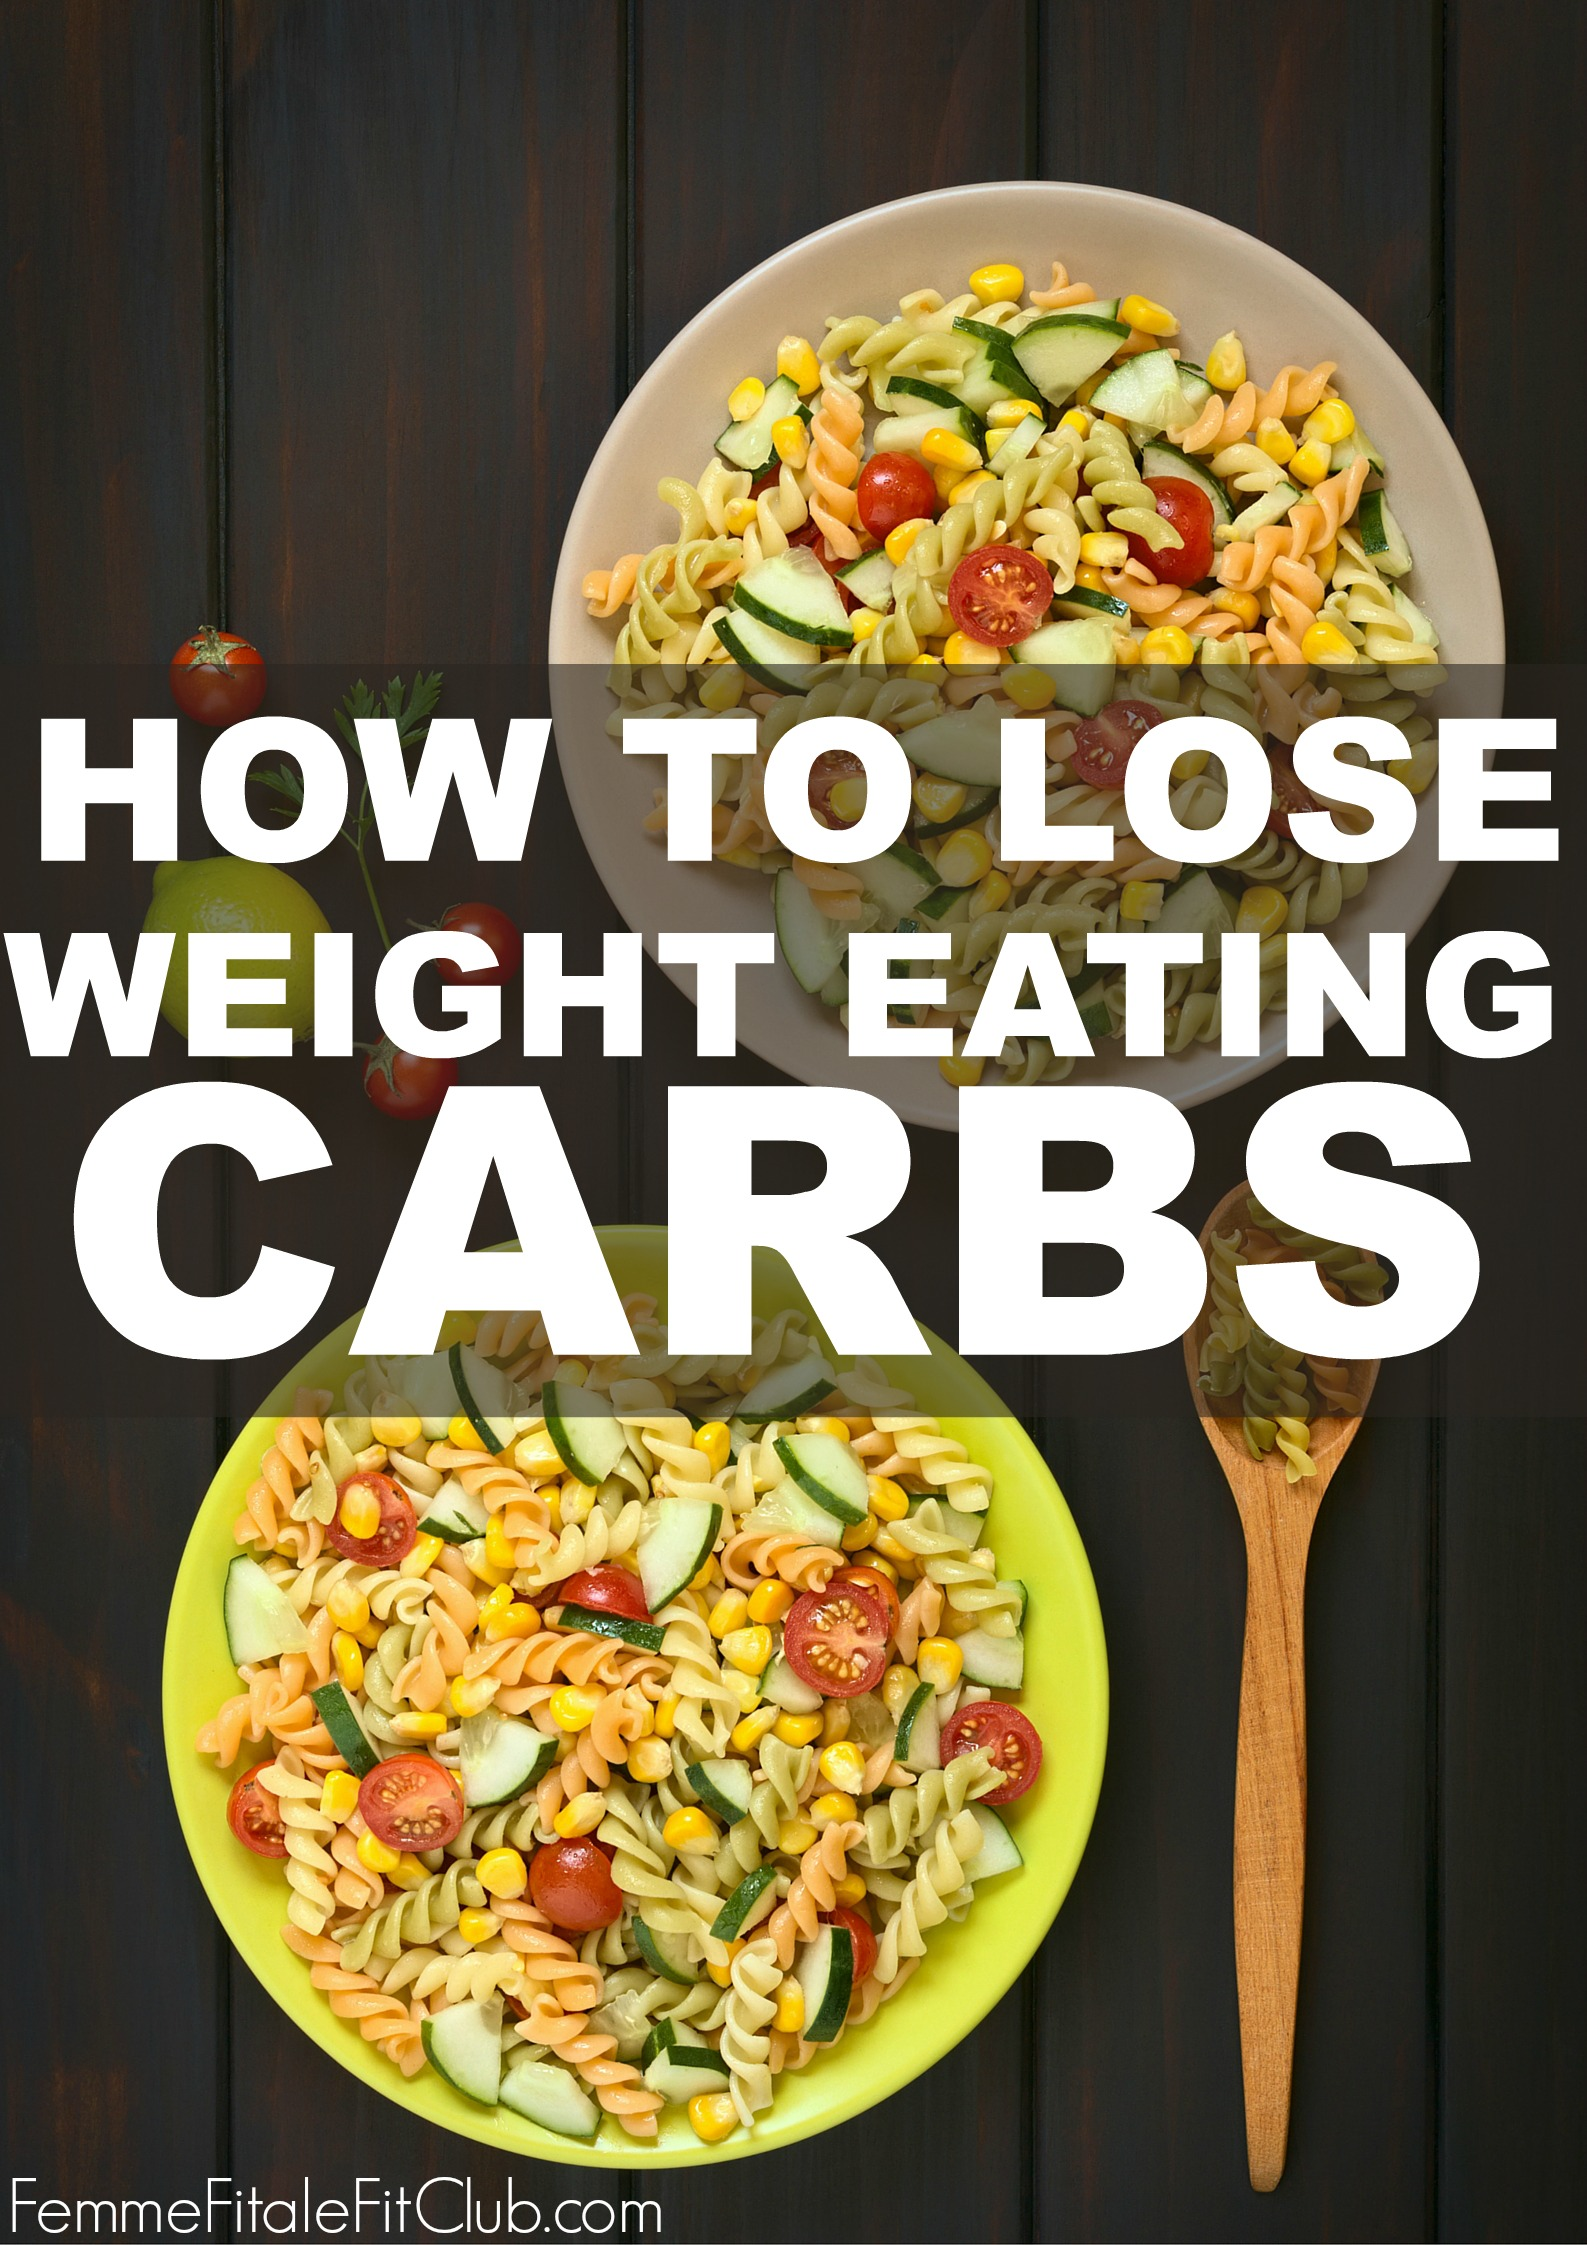 How to Lose Weight Eating Carbs